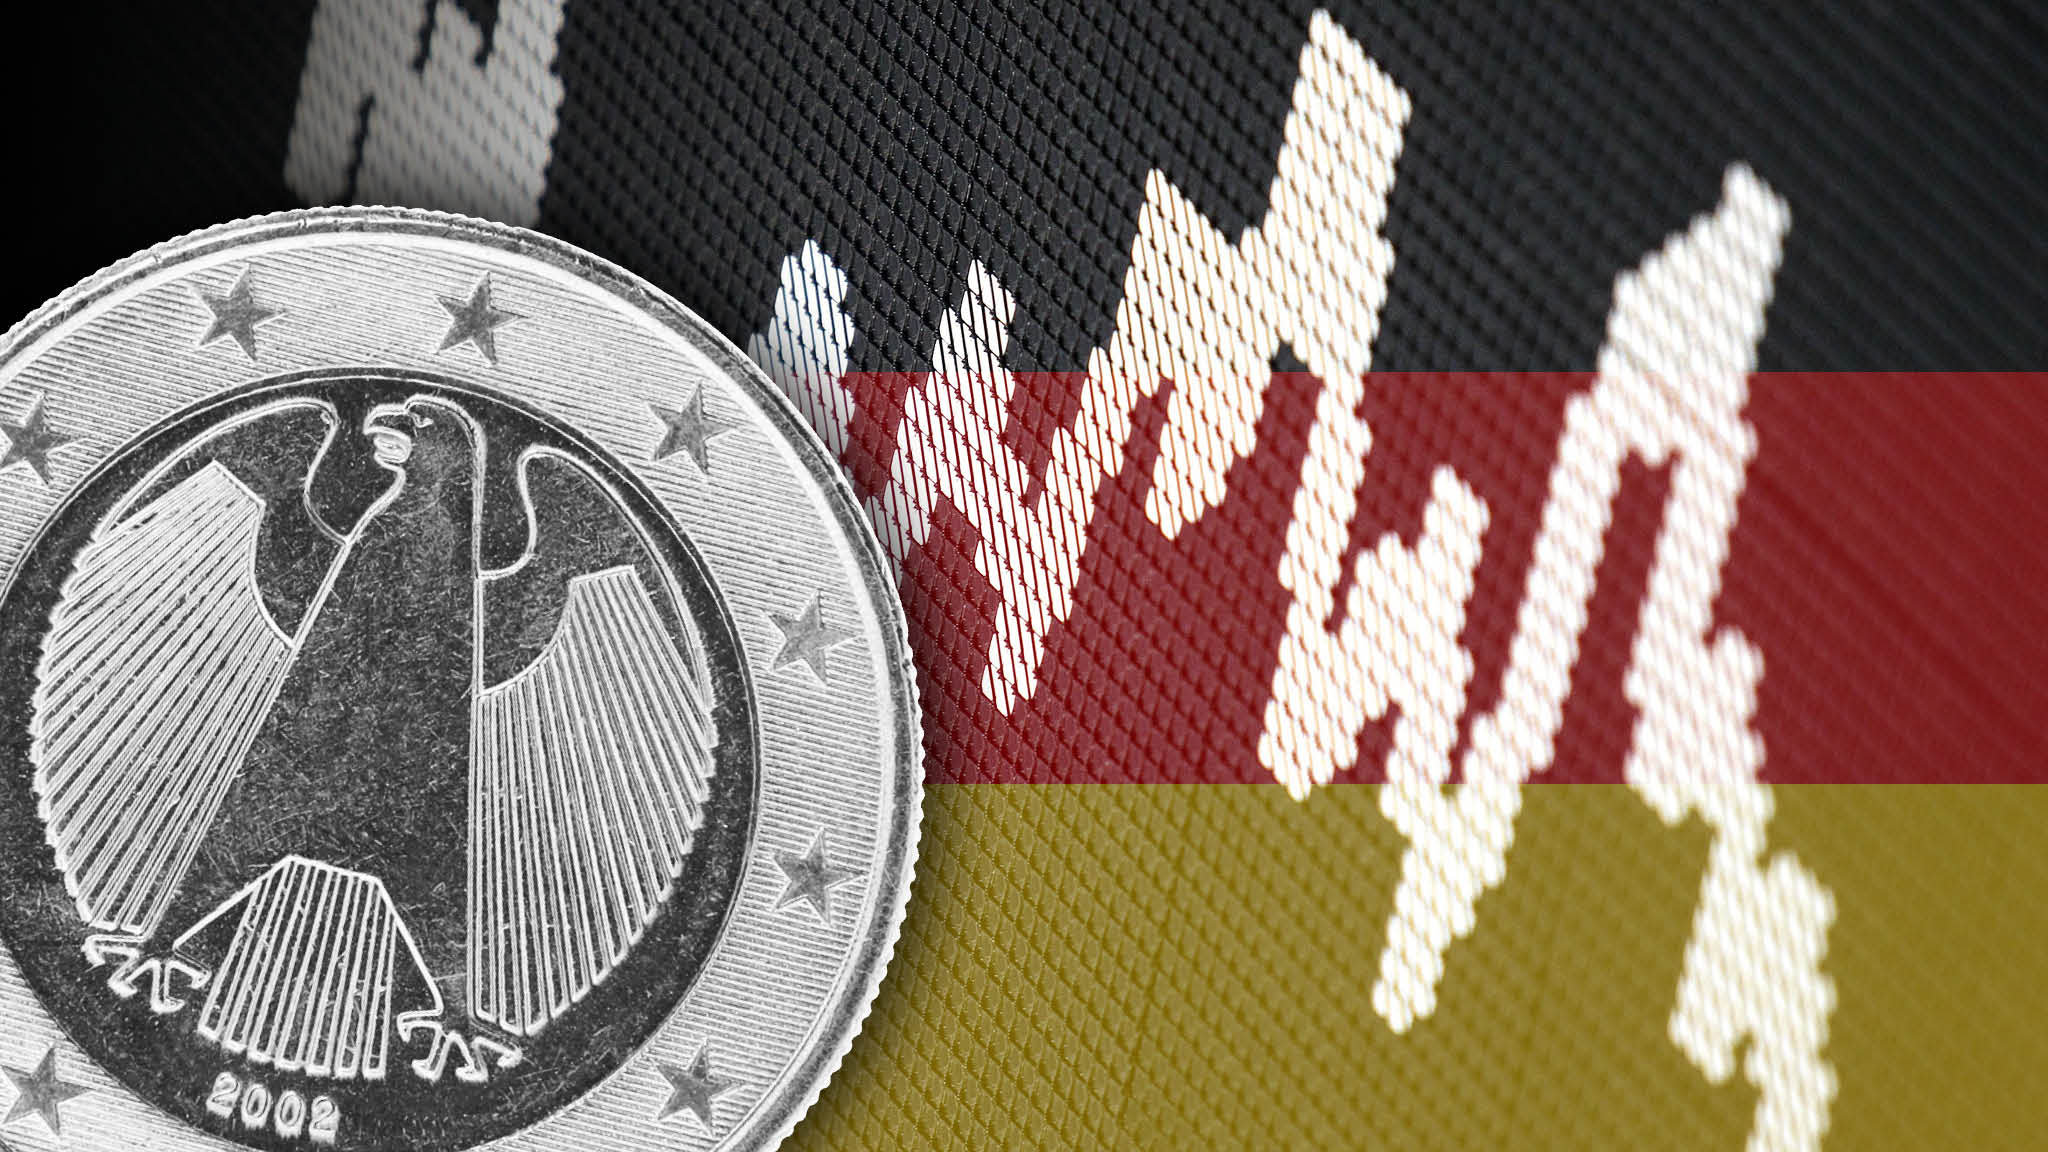 German stocks become ground zero for trade war fears